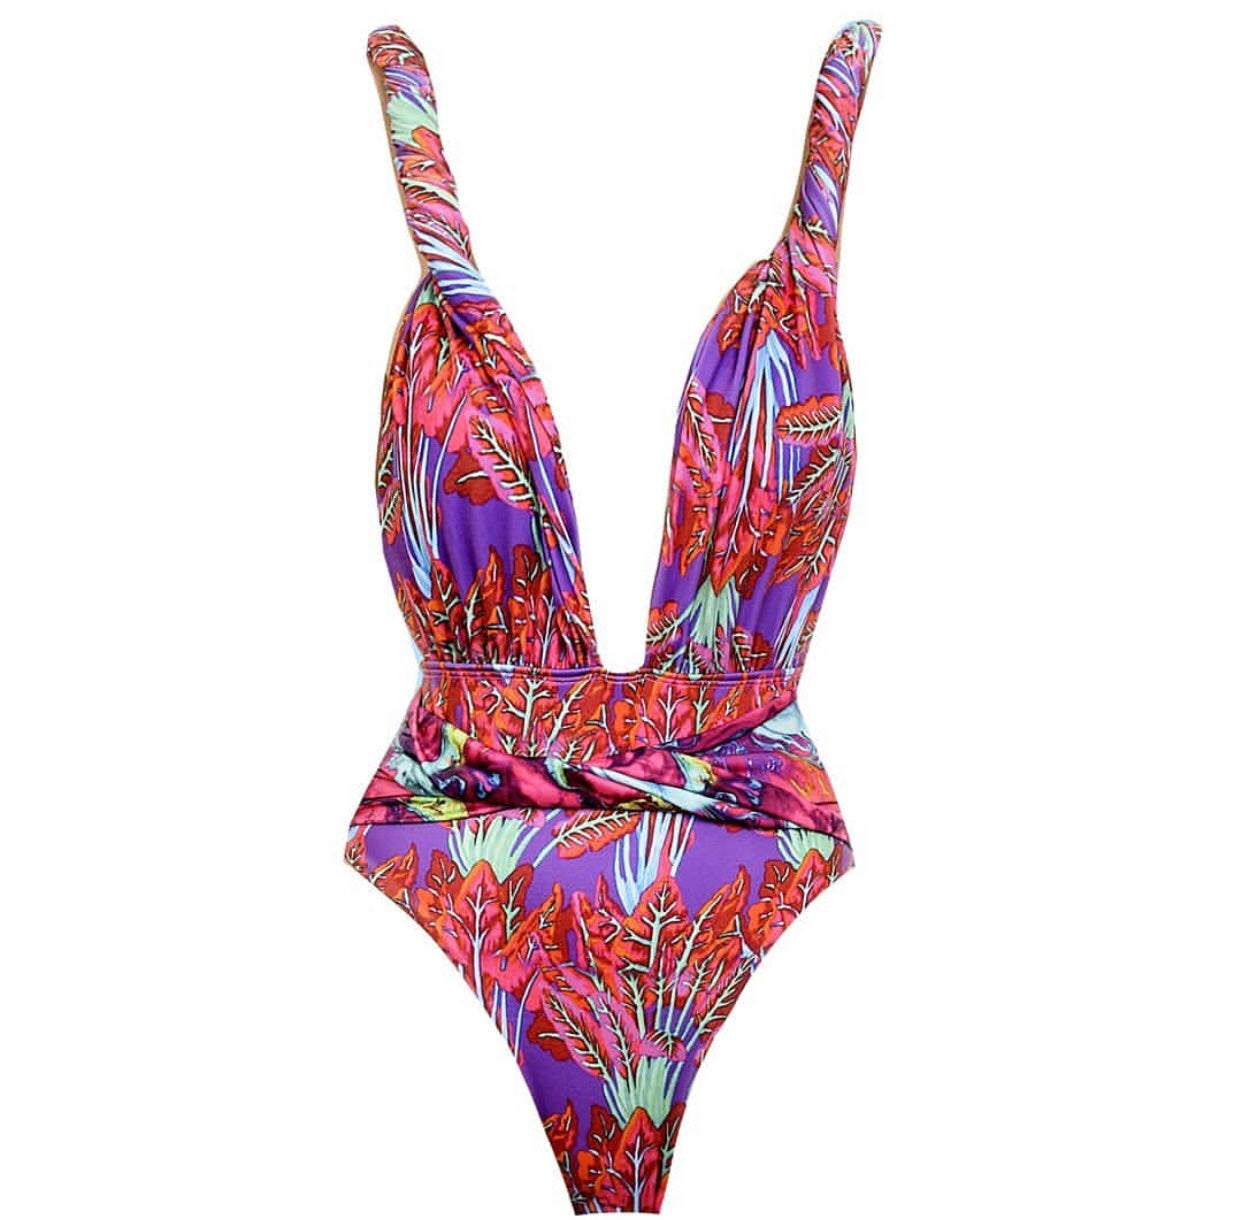 THE CHOUBLAK BATHING SUIT